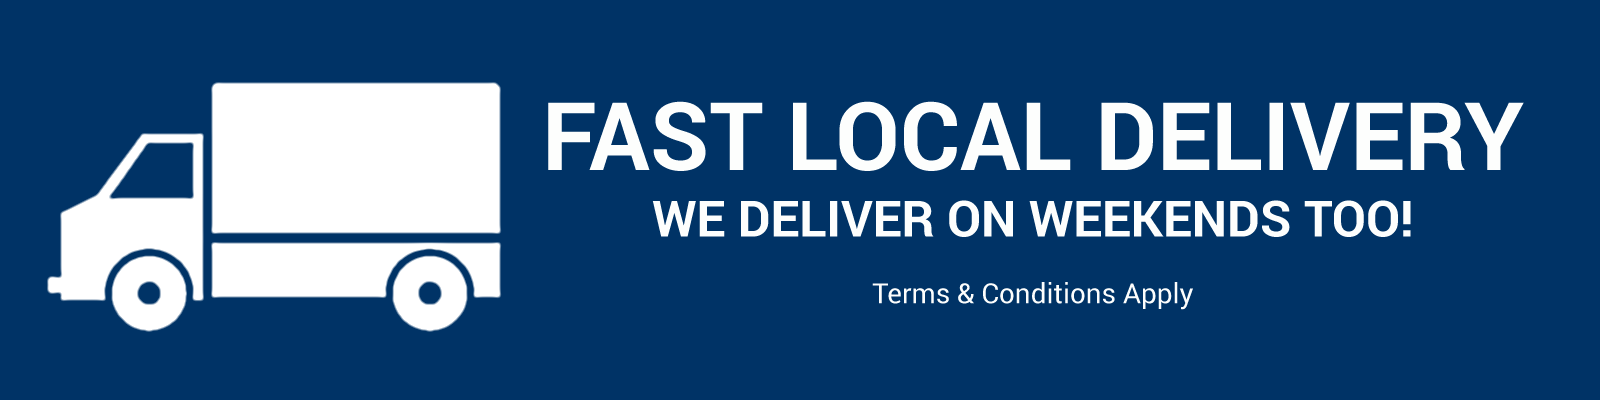 Fast Local Delivery banner